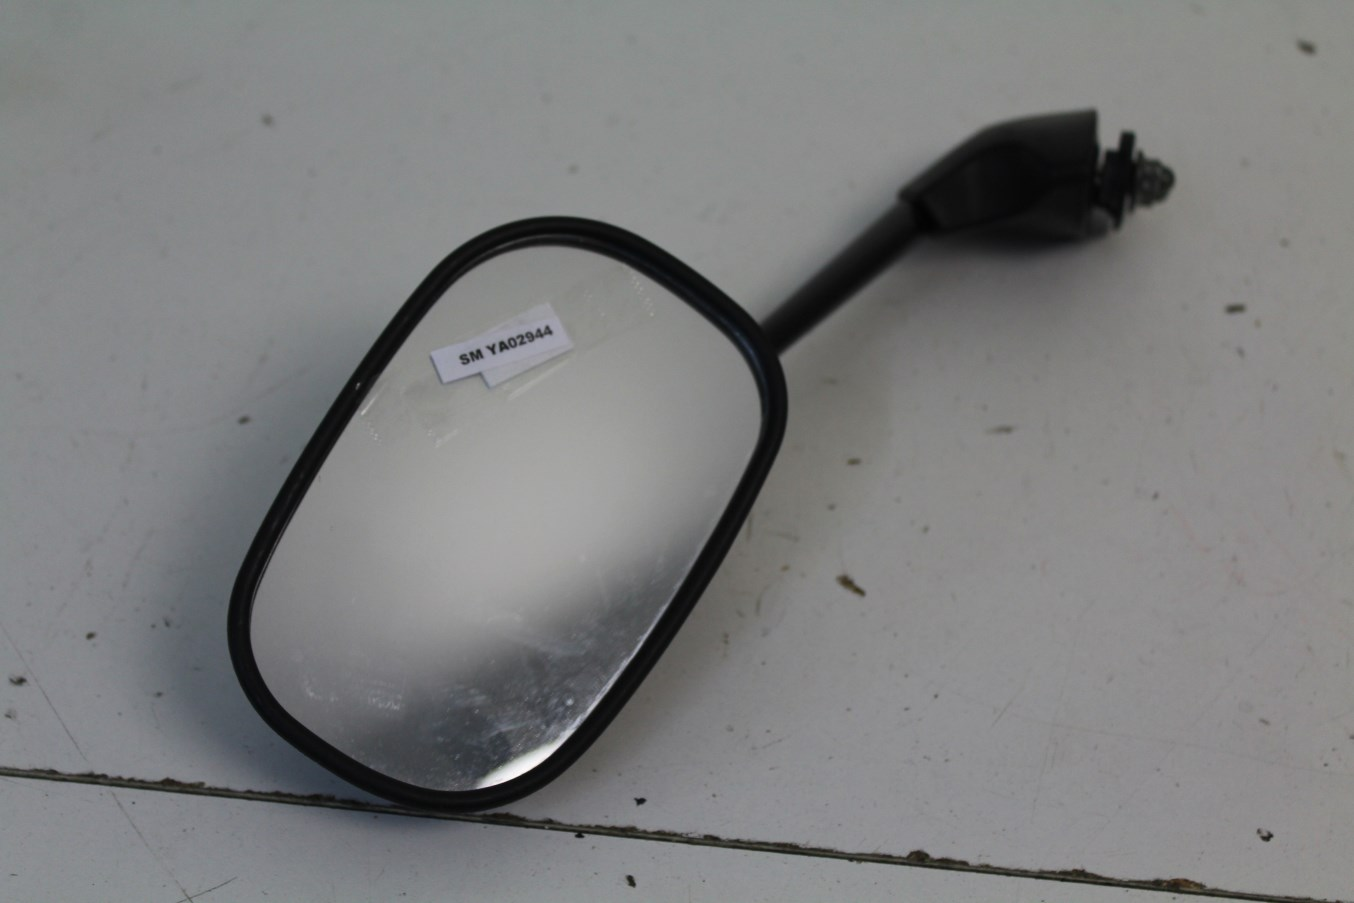 Yamaha r6 rj11 spiegel links mirror left 2006 2007 ebay for Yamaha r6 aftermarket mirrors